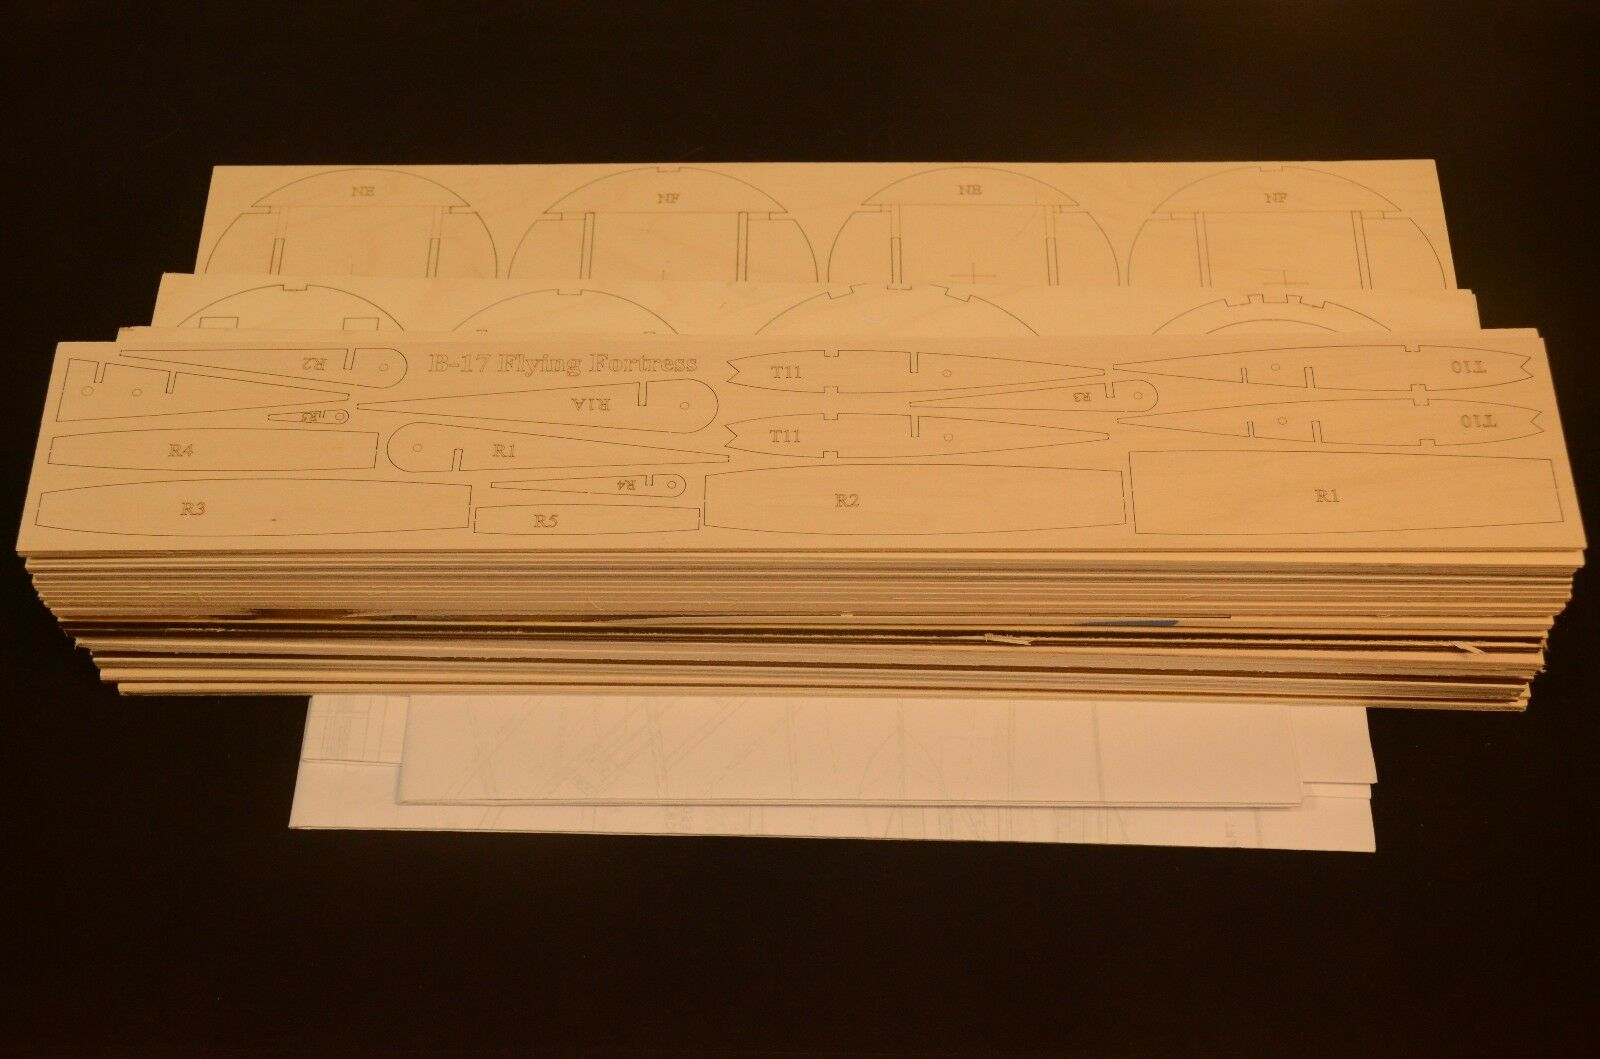 Giant 1 10 Scale B-17 FLYING FORTRESS Laser Cut Short Kit & Plans 125 in. WS